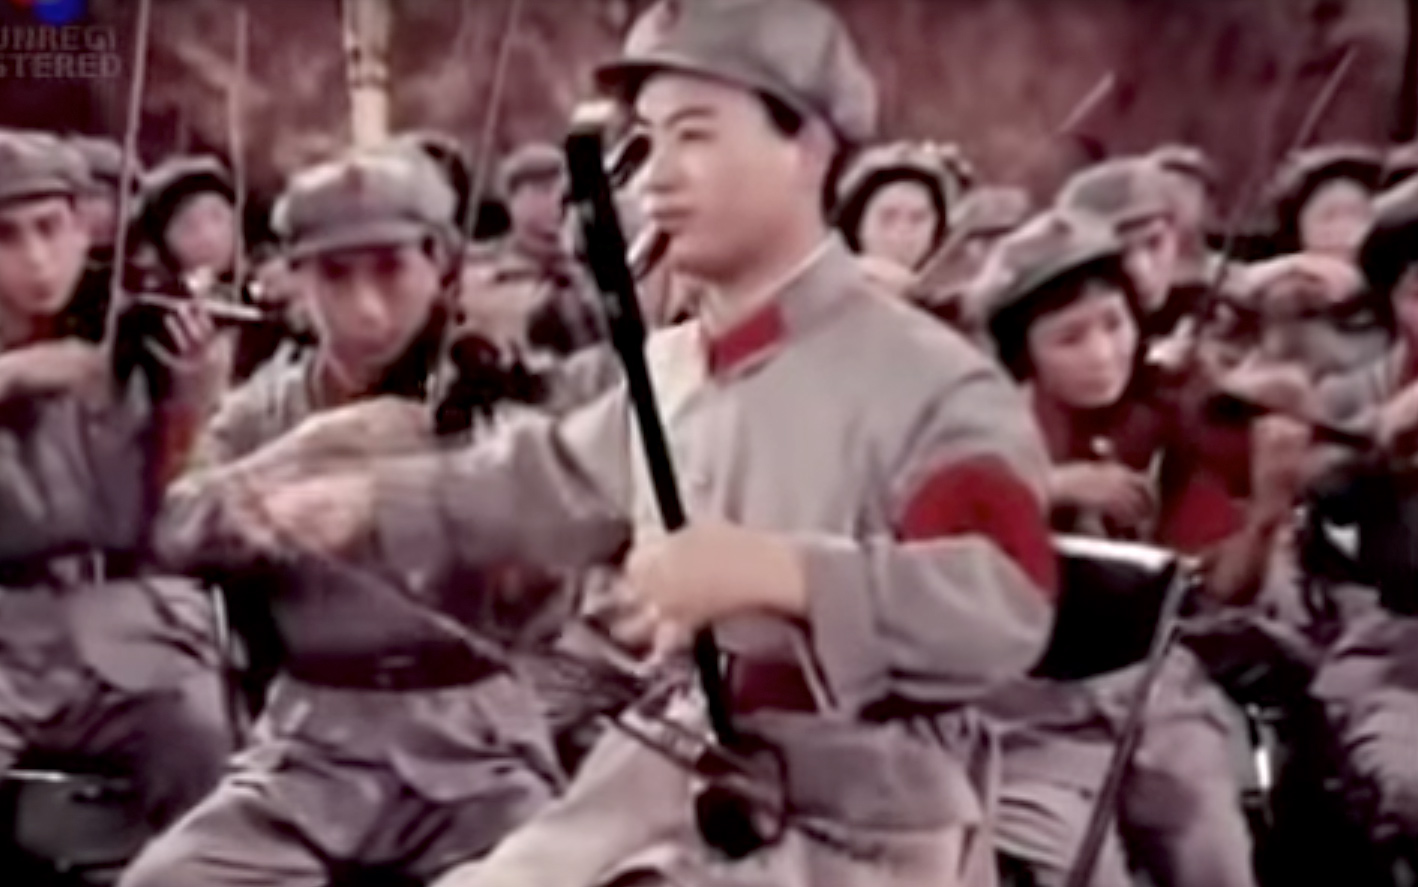 Chinese People's Party Orchestra play 'Beat it'